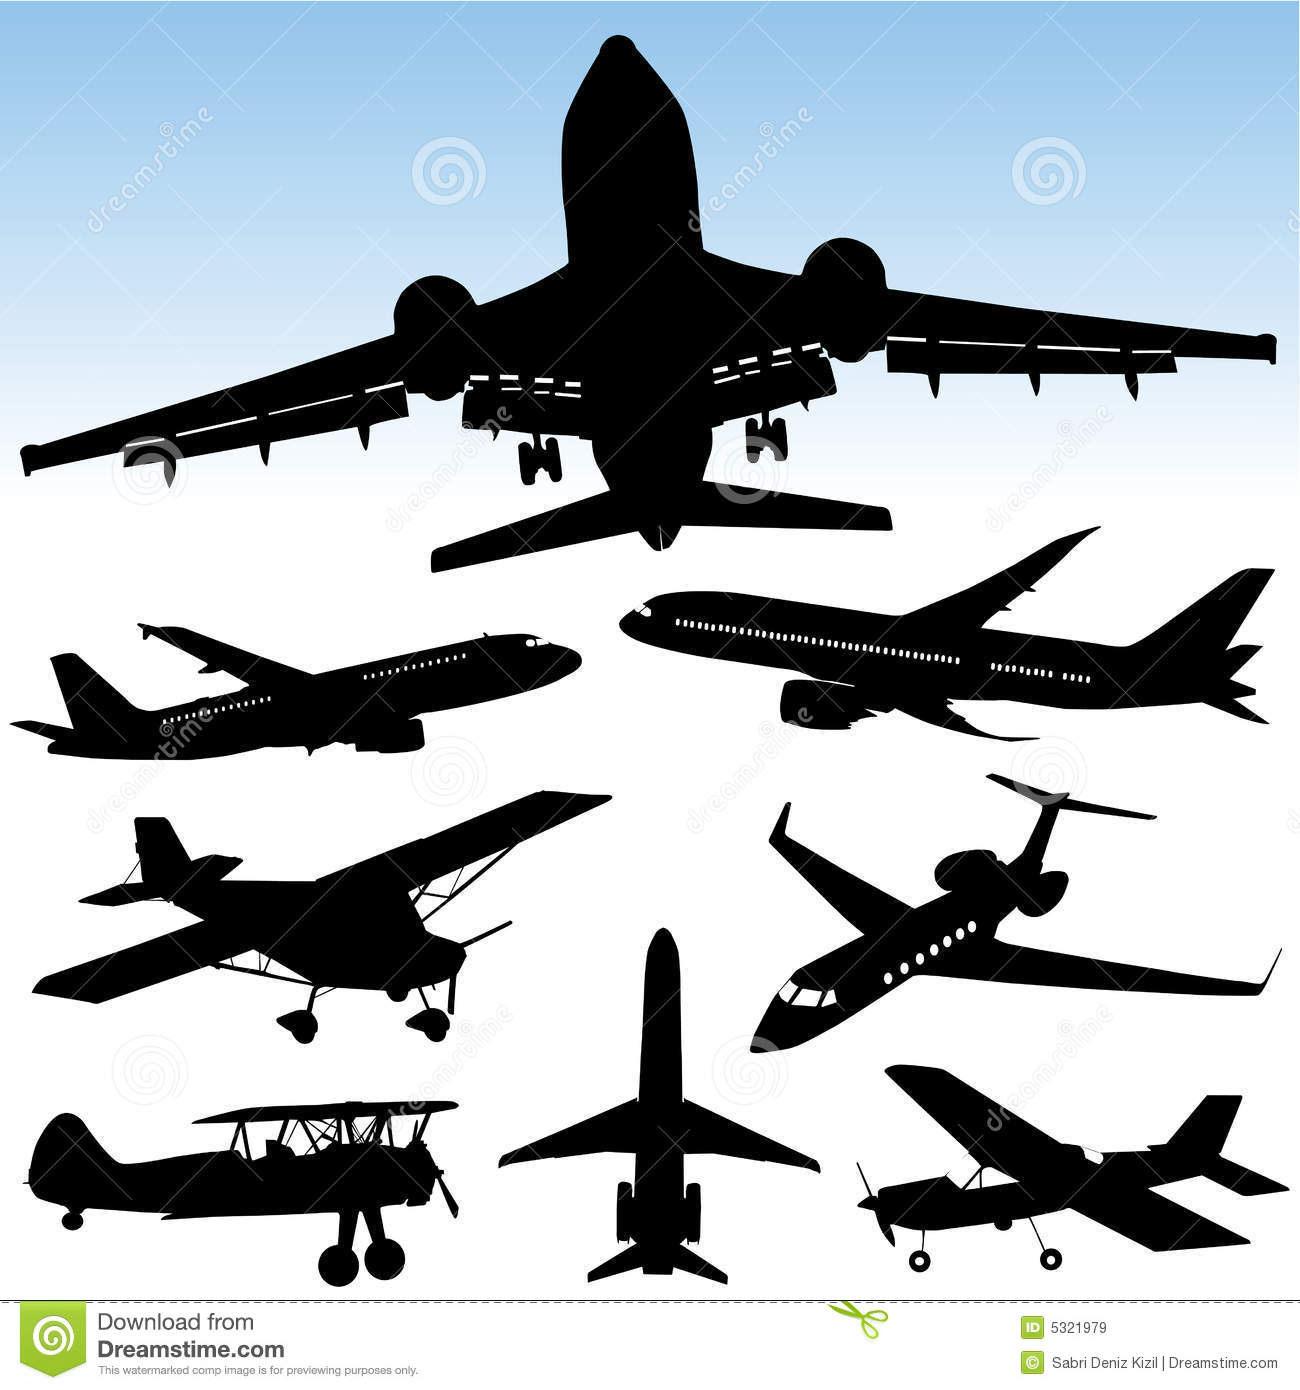 old plane illustration with Royalty Free Stock Images Airplane Vector Image5321979 on Biplane top view further Stock Photography Dance Symbol Image26666522 additionally A380 Qatar Airways 68407145 together with Lessons2 furthermore 8 Tropic Islands Vectors 11392.